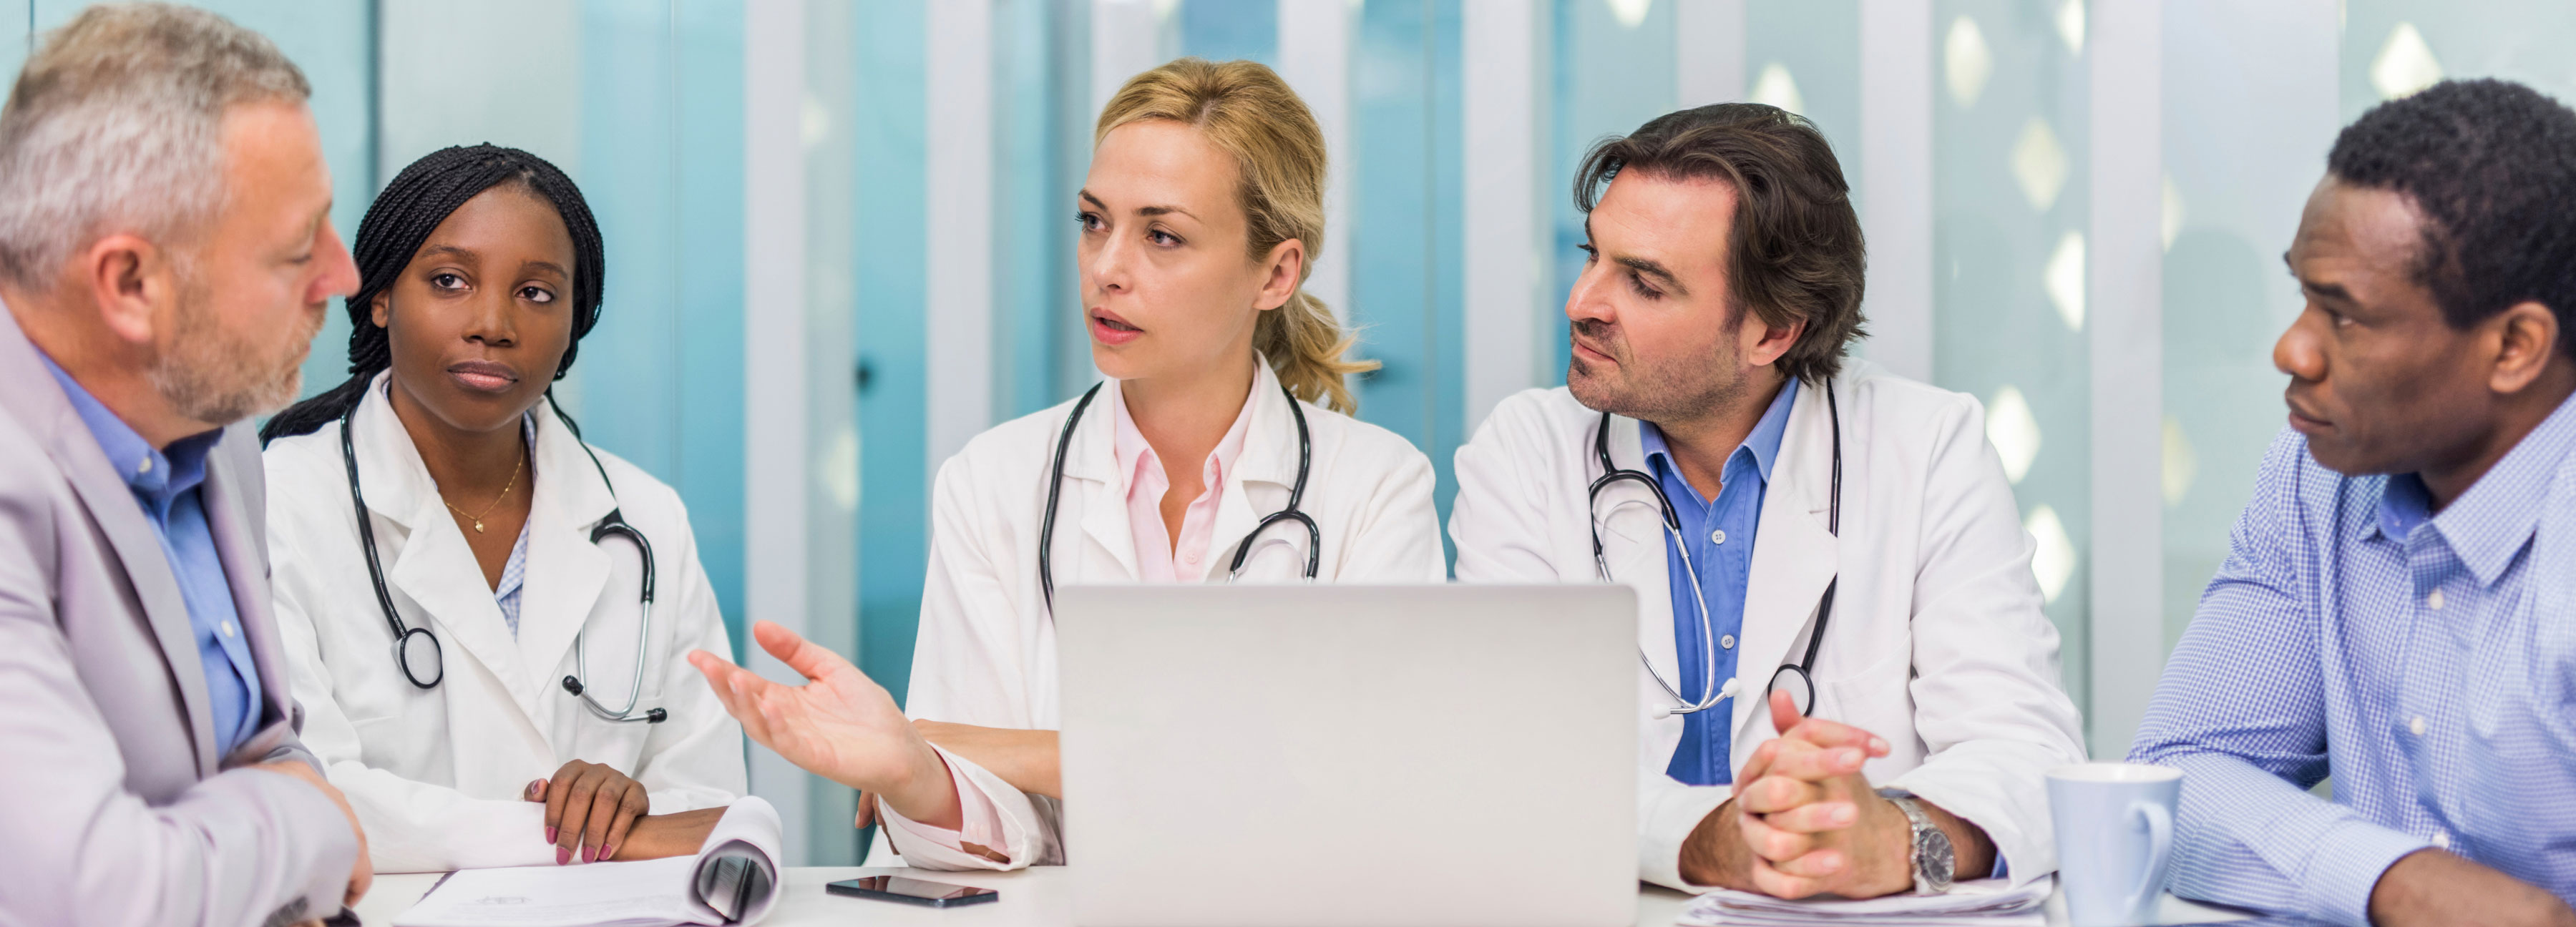 A team of medical professionals in a conference room reviewing information